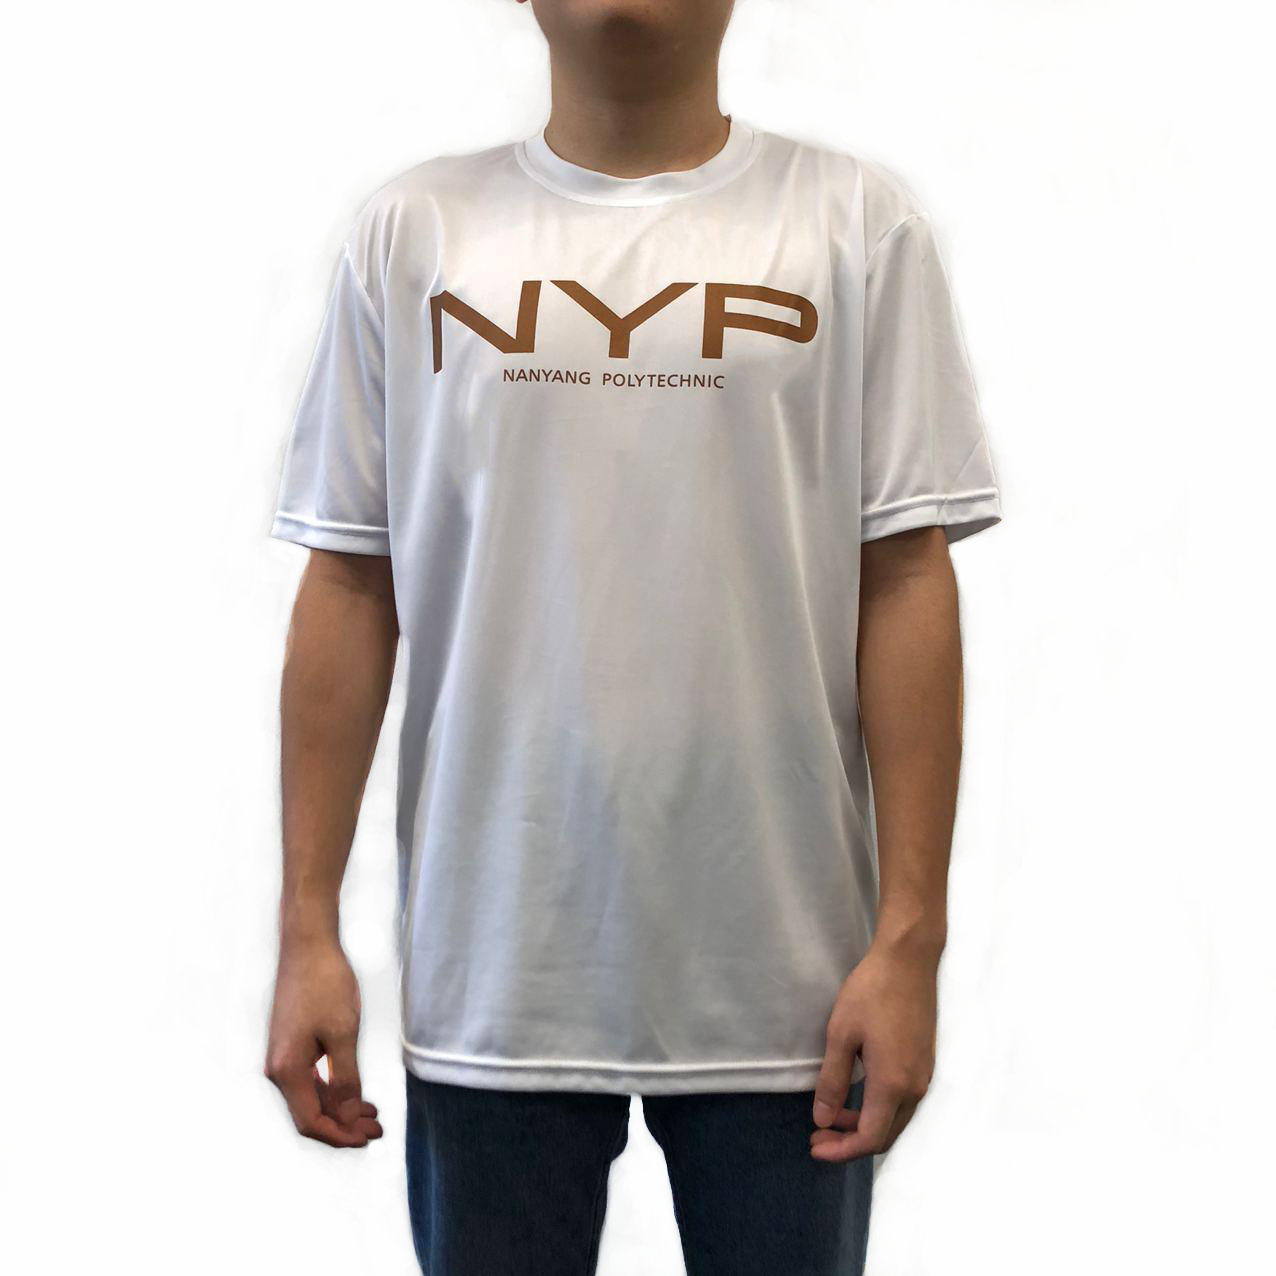 NYP ROUND NECK SMOOTH DRY FIT T-SHIRT WHITE - D'Studio